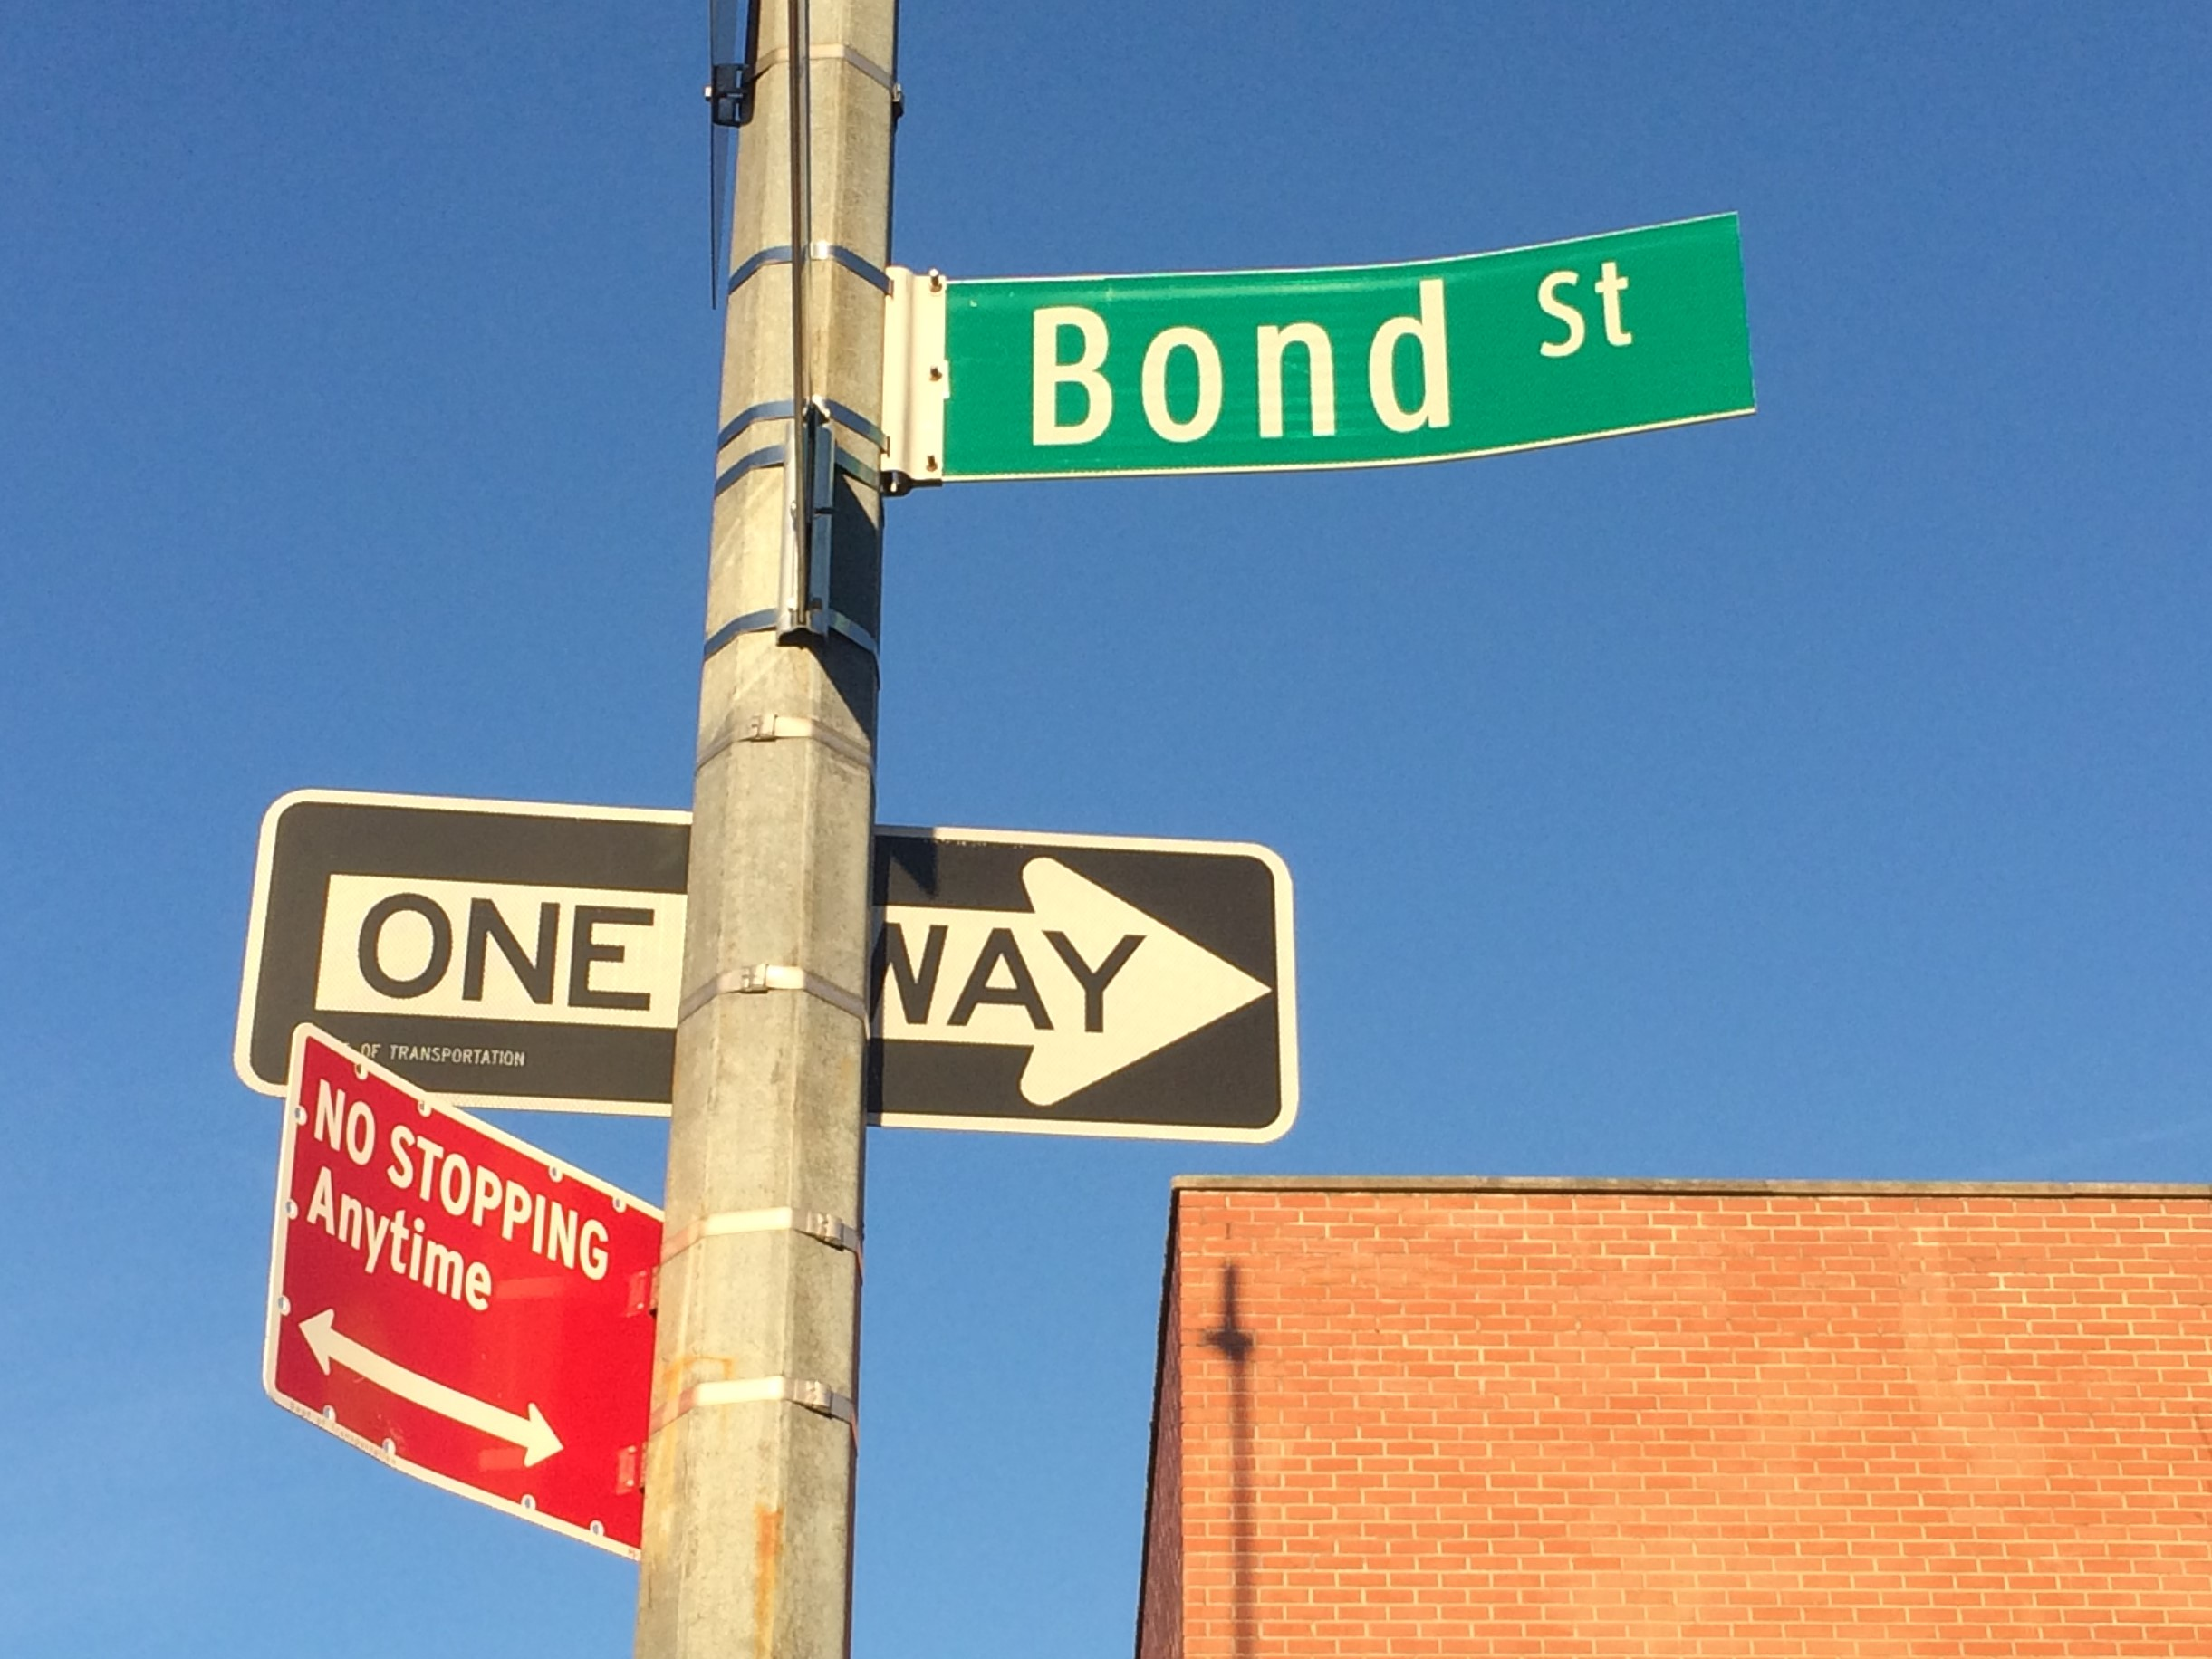 Bond St sign